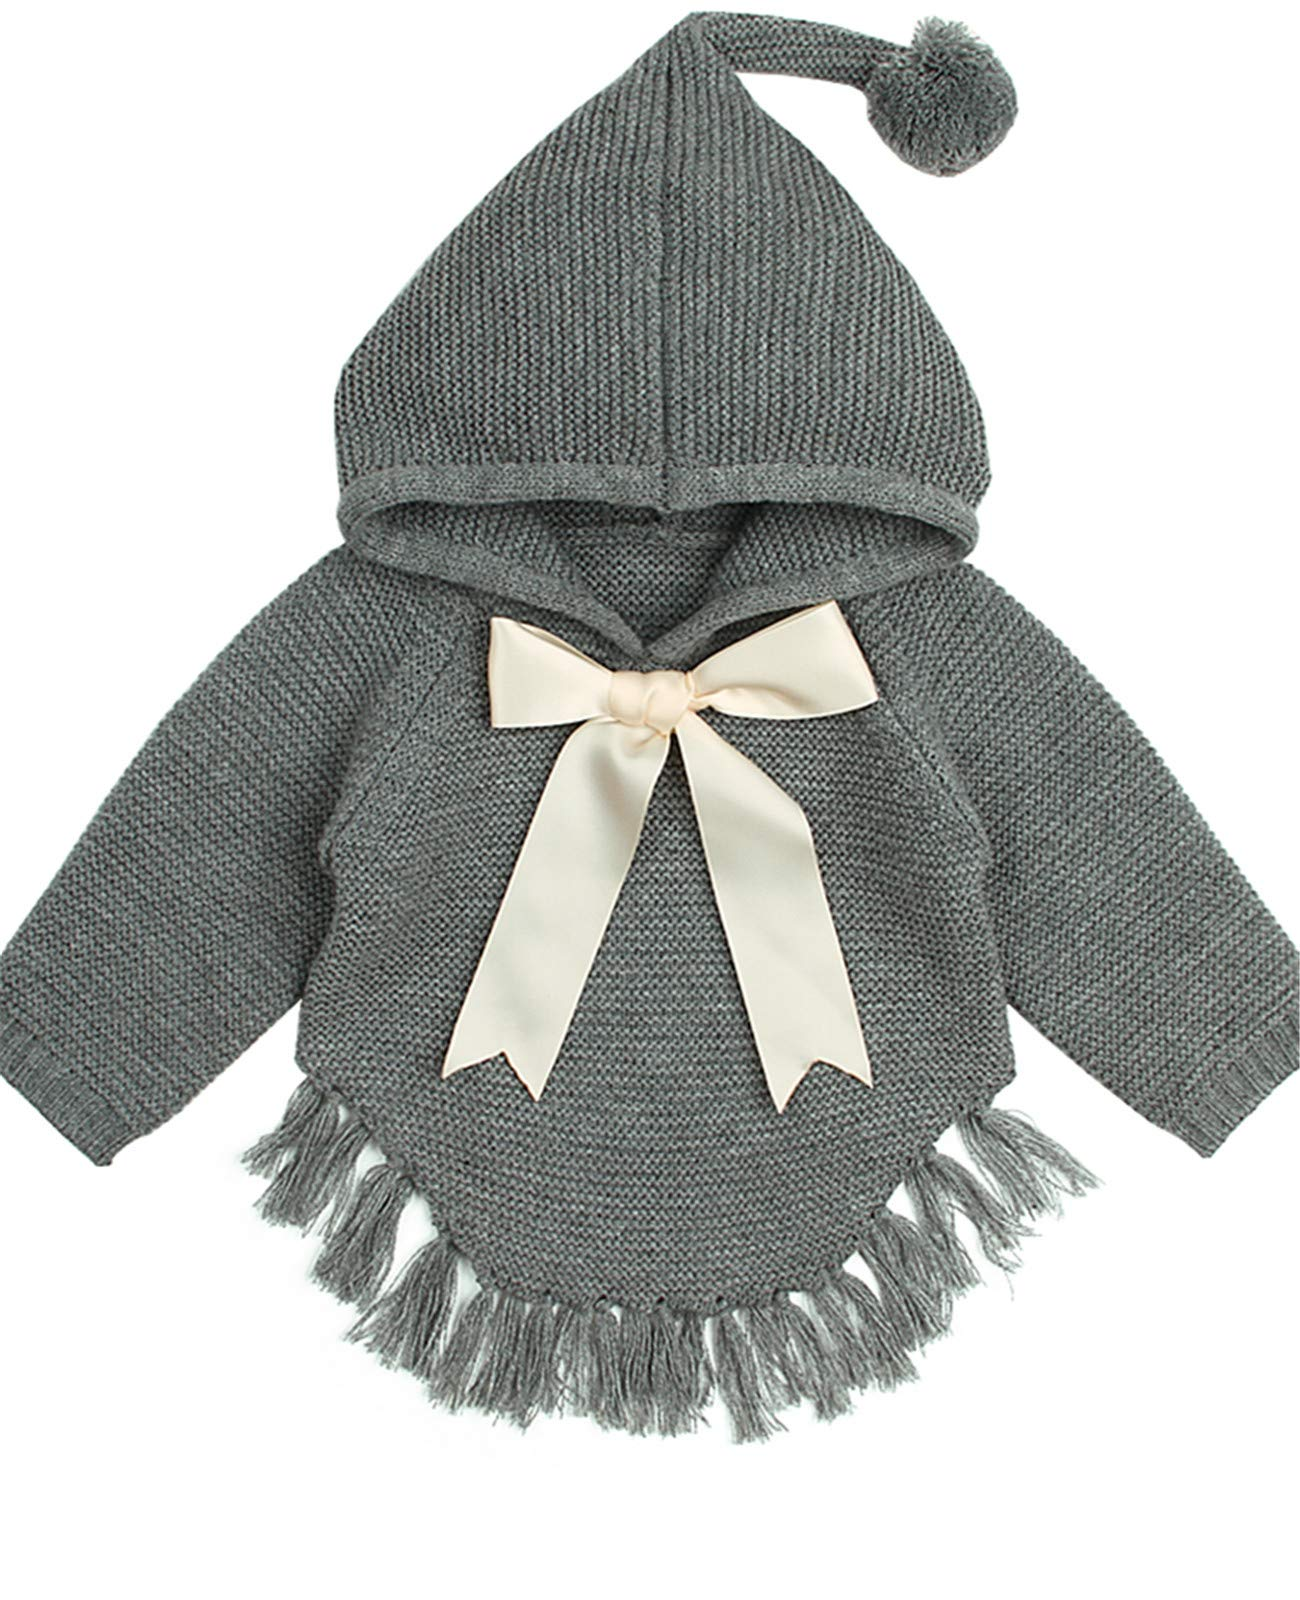 ReachMe Baby Girl Hooded Pullover Sweater Knitted Cardigan Coat Winter Outerwear(Grey,6 Month) by ReachMe